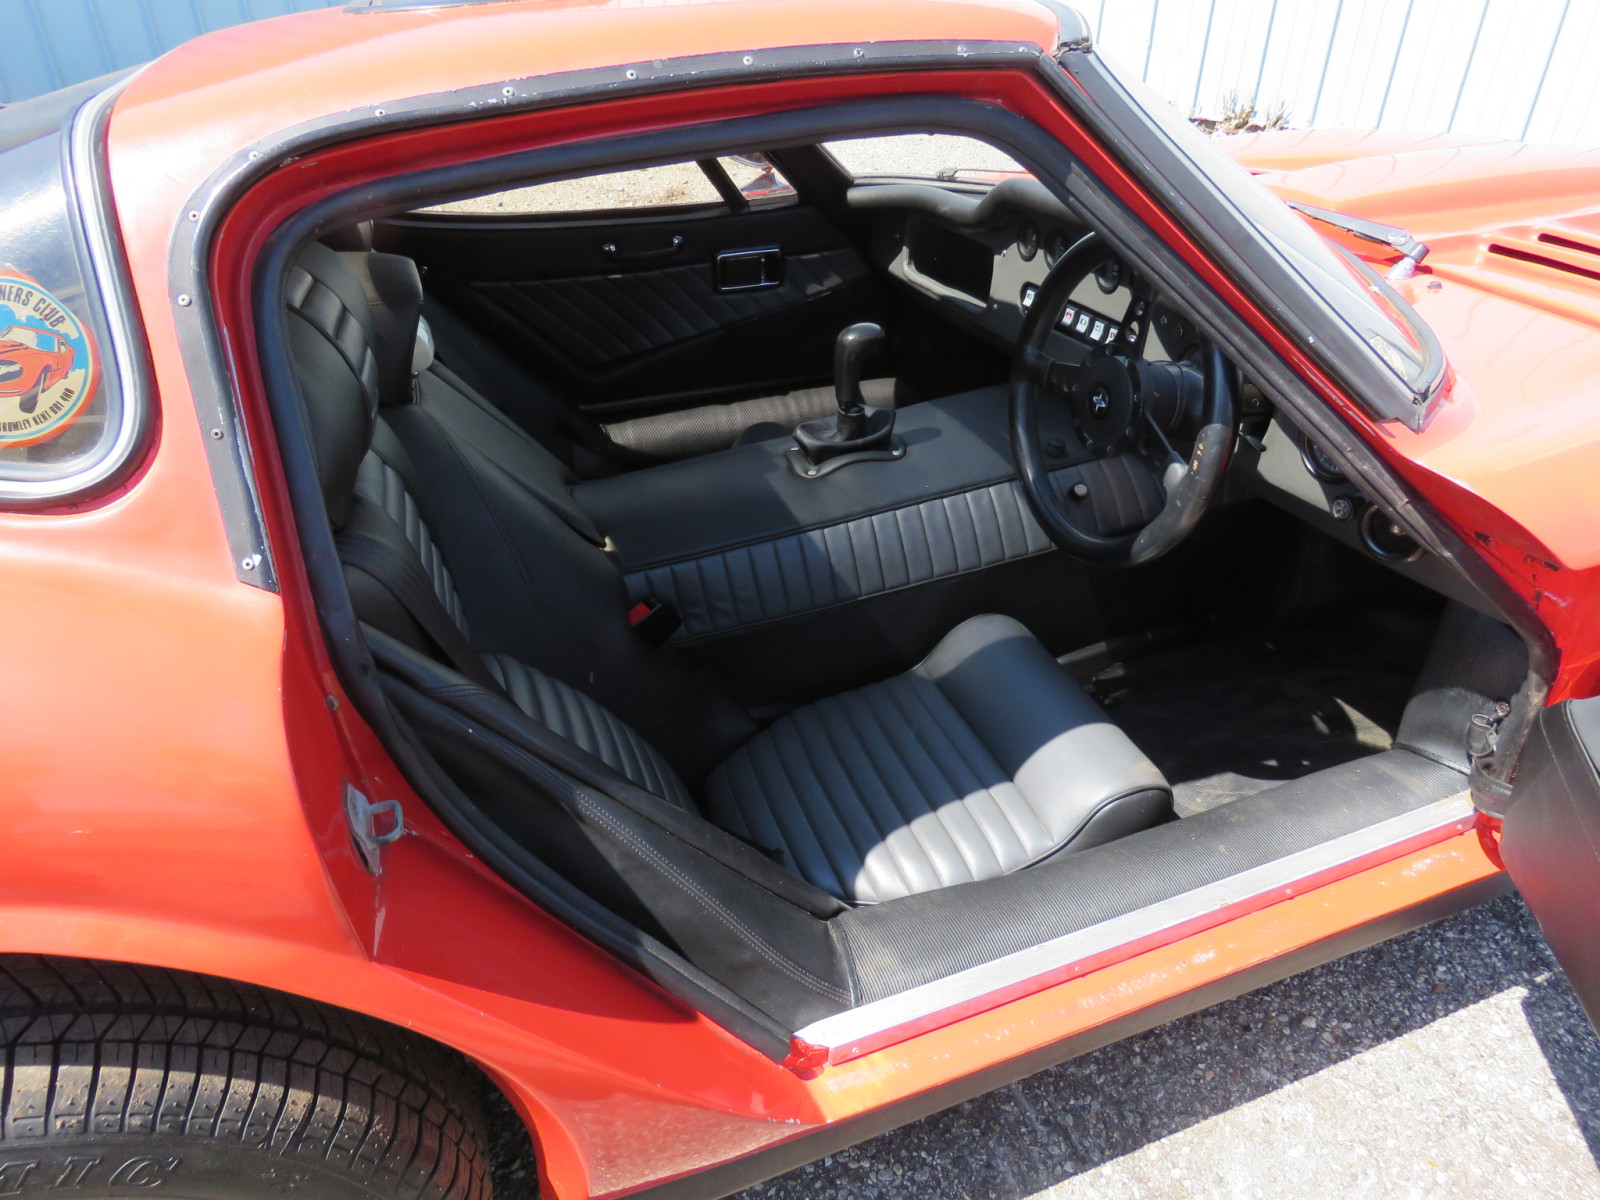 1986 Marcos Model 1086 Coupe - Image 15